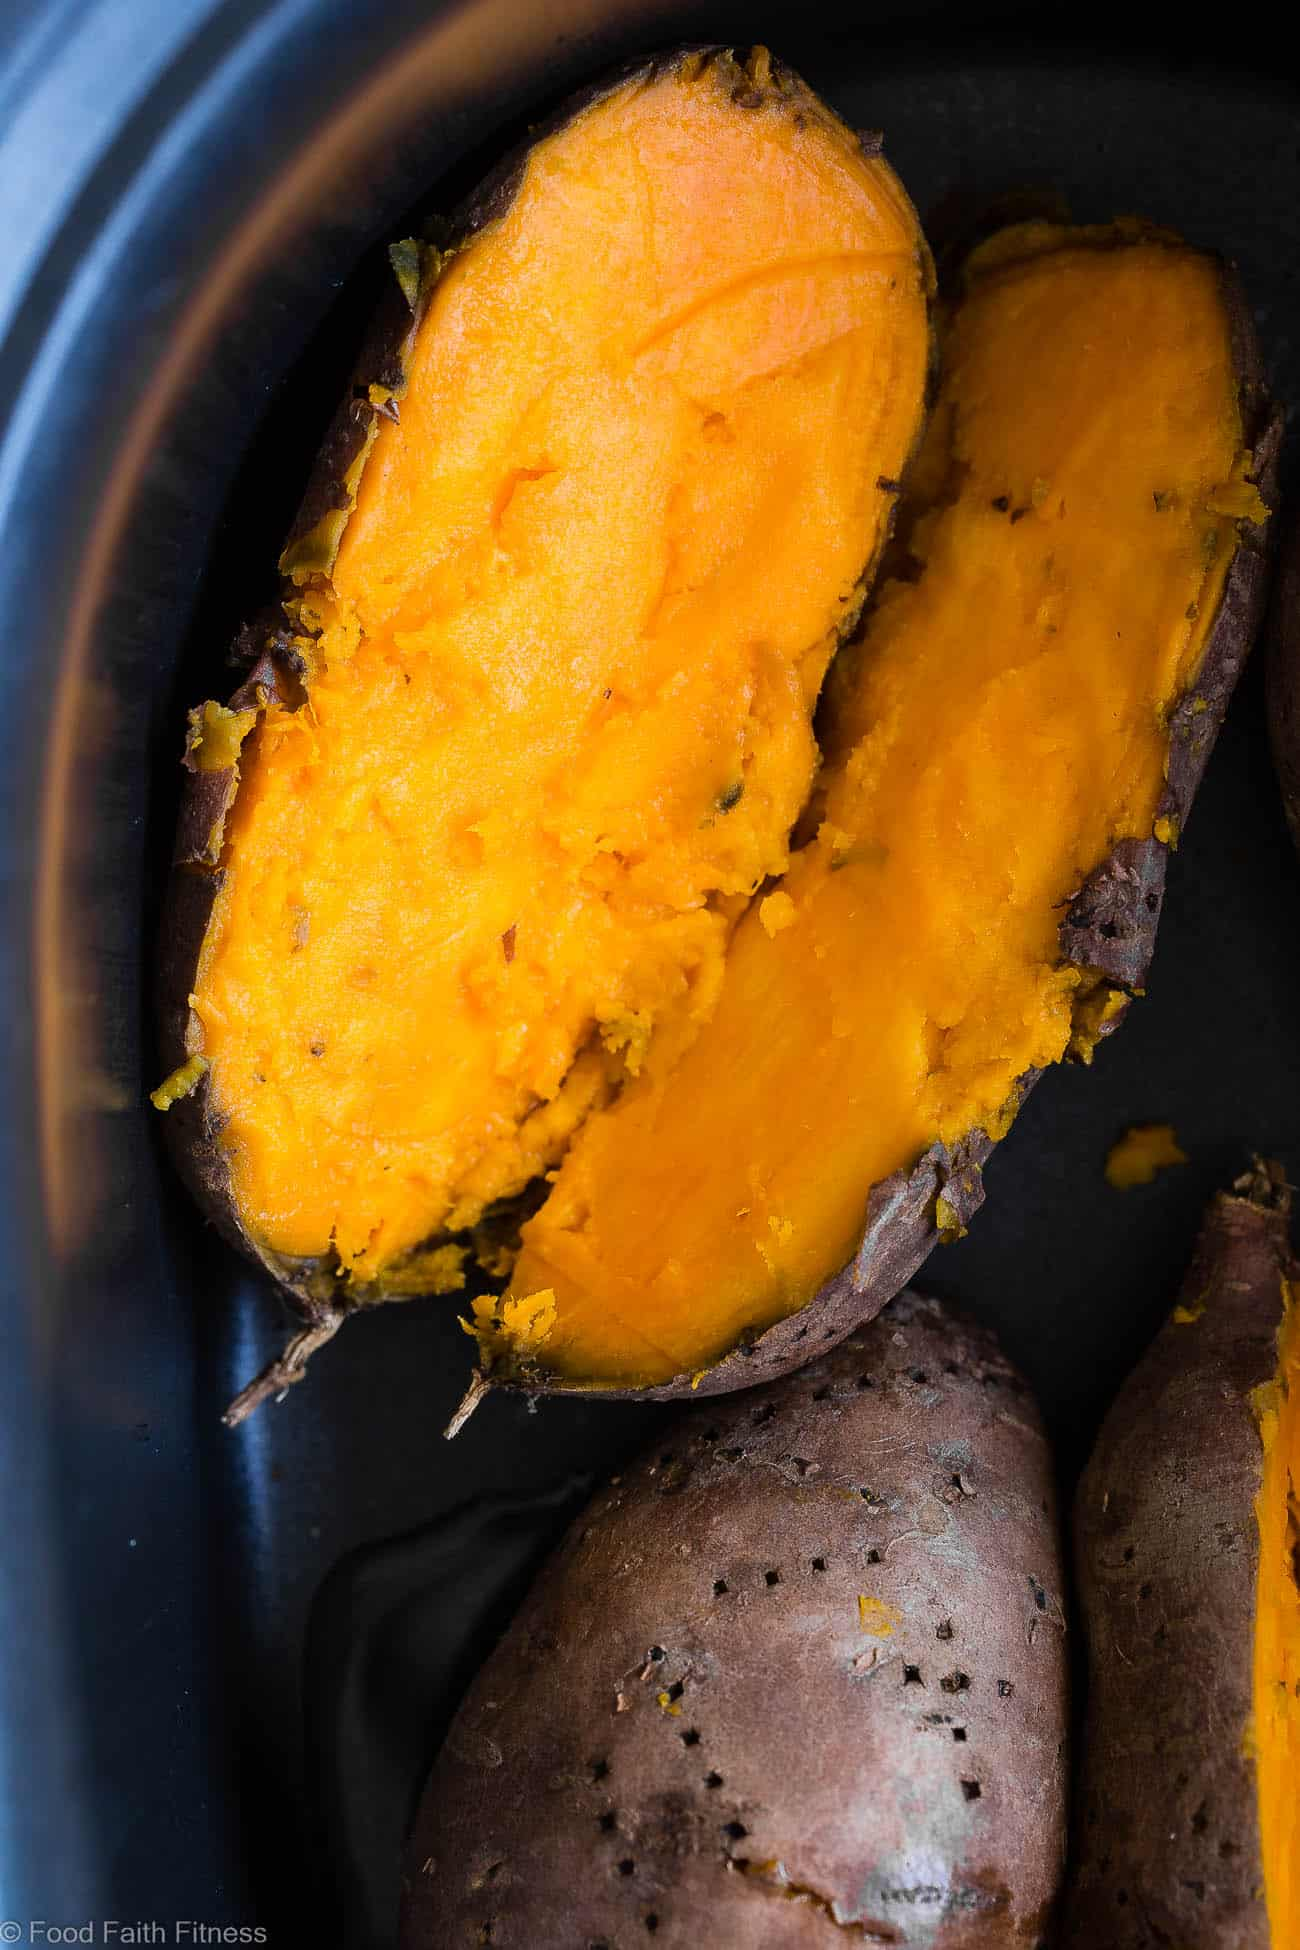 How to Cook Sweet Potatoes in the Crock Pot - Let the slow cooker do all the work for you! These sweet potatoes are SO easy and come out perfect EVERY TIME! A healthy, paleo, vegan and whole30 side dish! | #Foodfaithfitness | #Paleo #Glutenfree #Healthy #Slowcooker #Crockpot